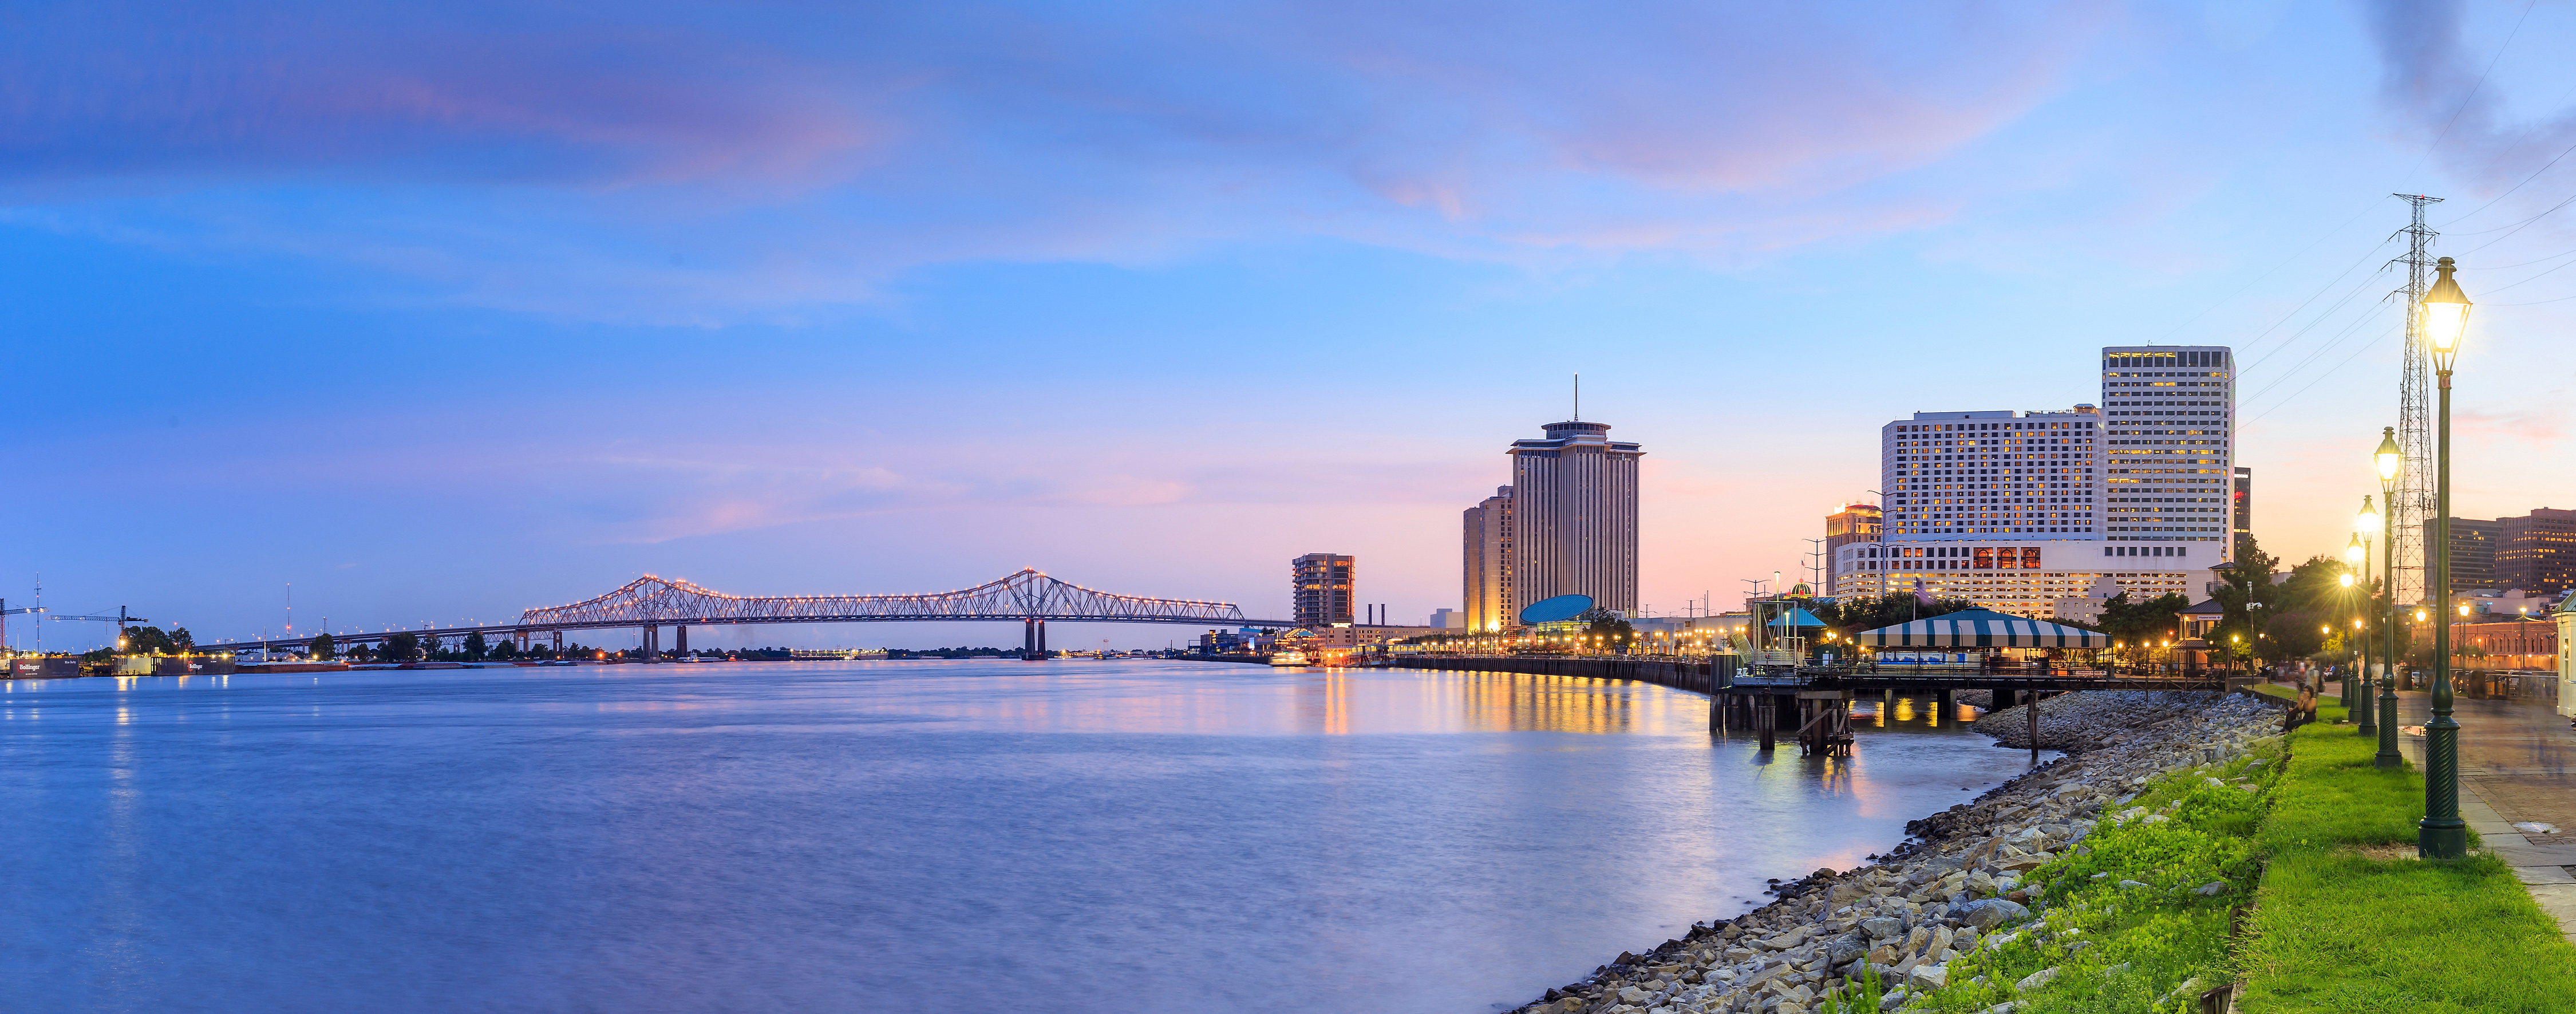 waterfront of New Orleans